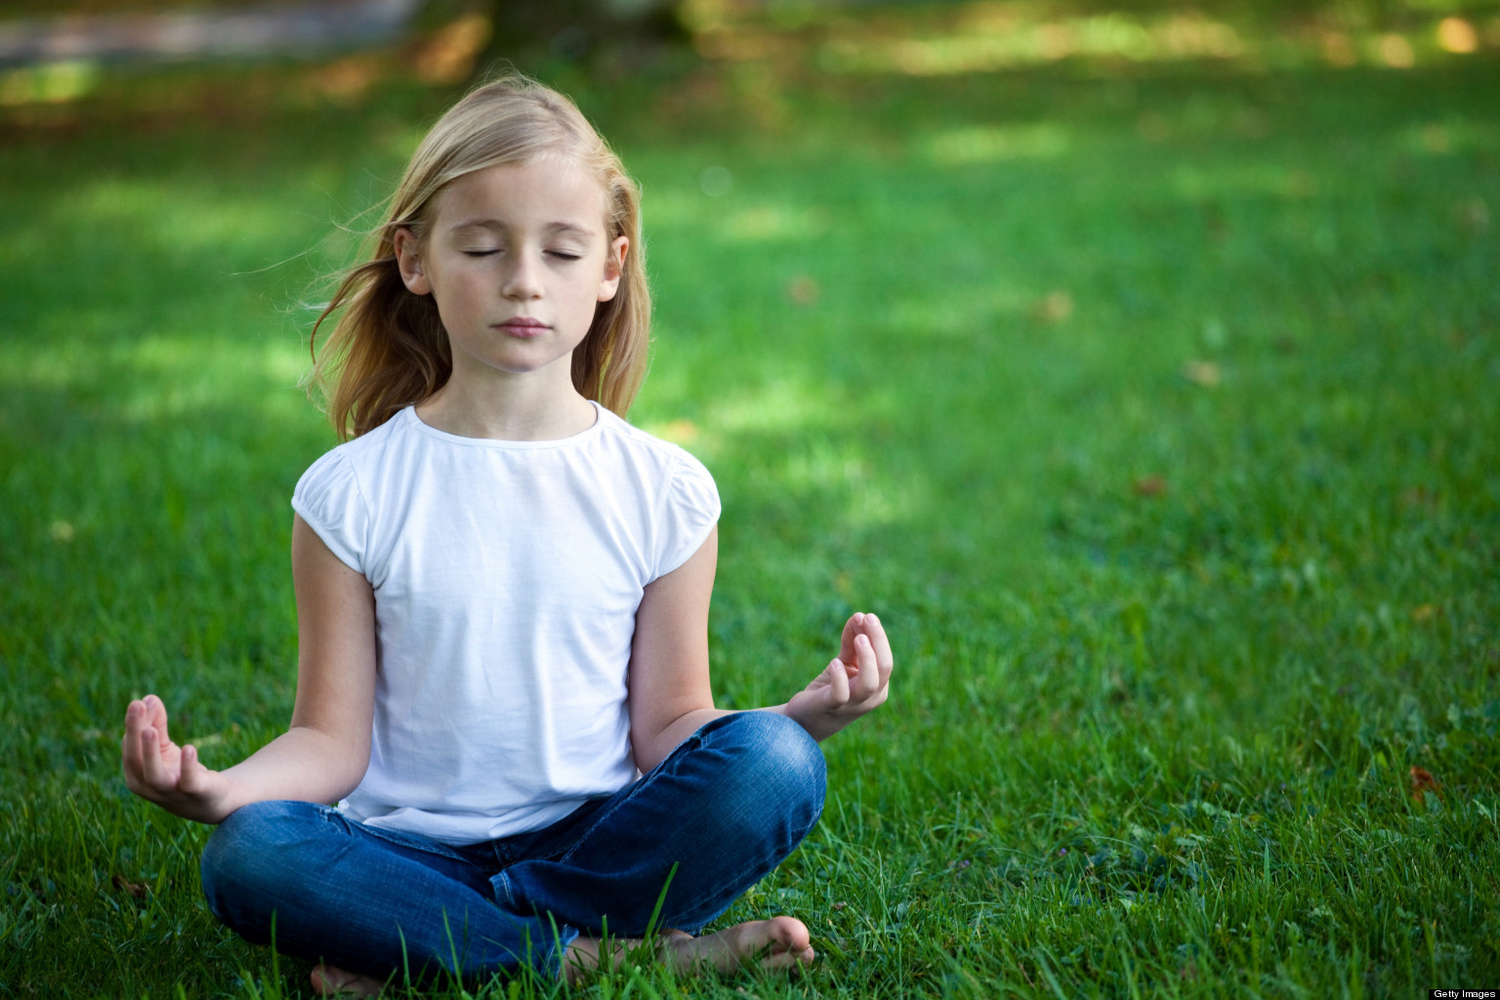 Mindfulness for Children - Stop and pause. Allowing time for your children to gain and grow their mindfulness skills will benefit them by: managing strong emotions, strengthen self-regulation, and provide them tools for mindfulness practice both at home and school.